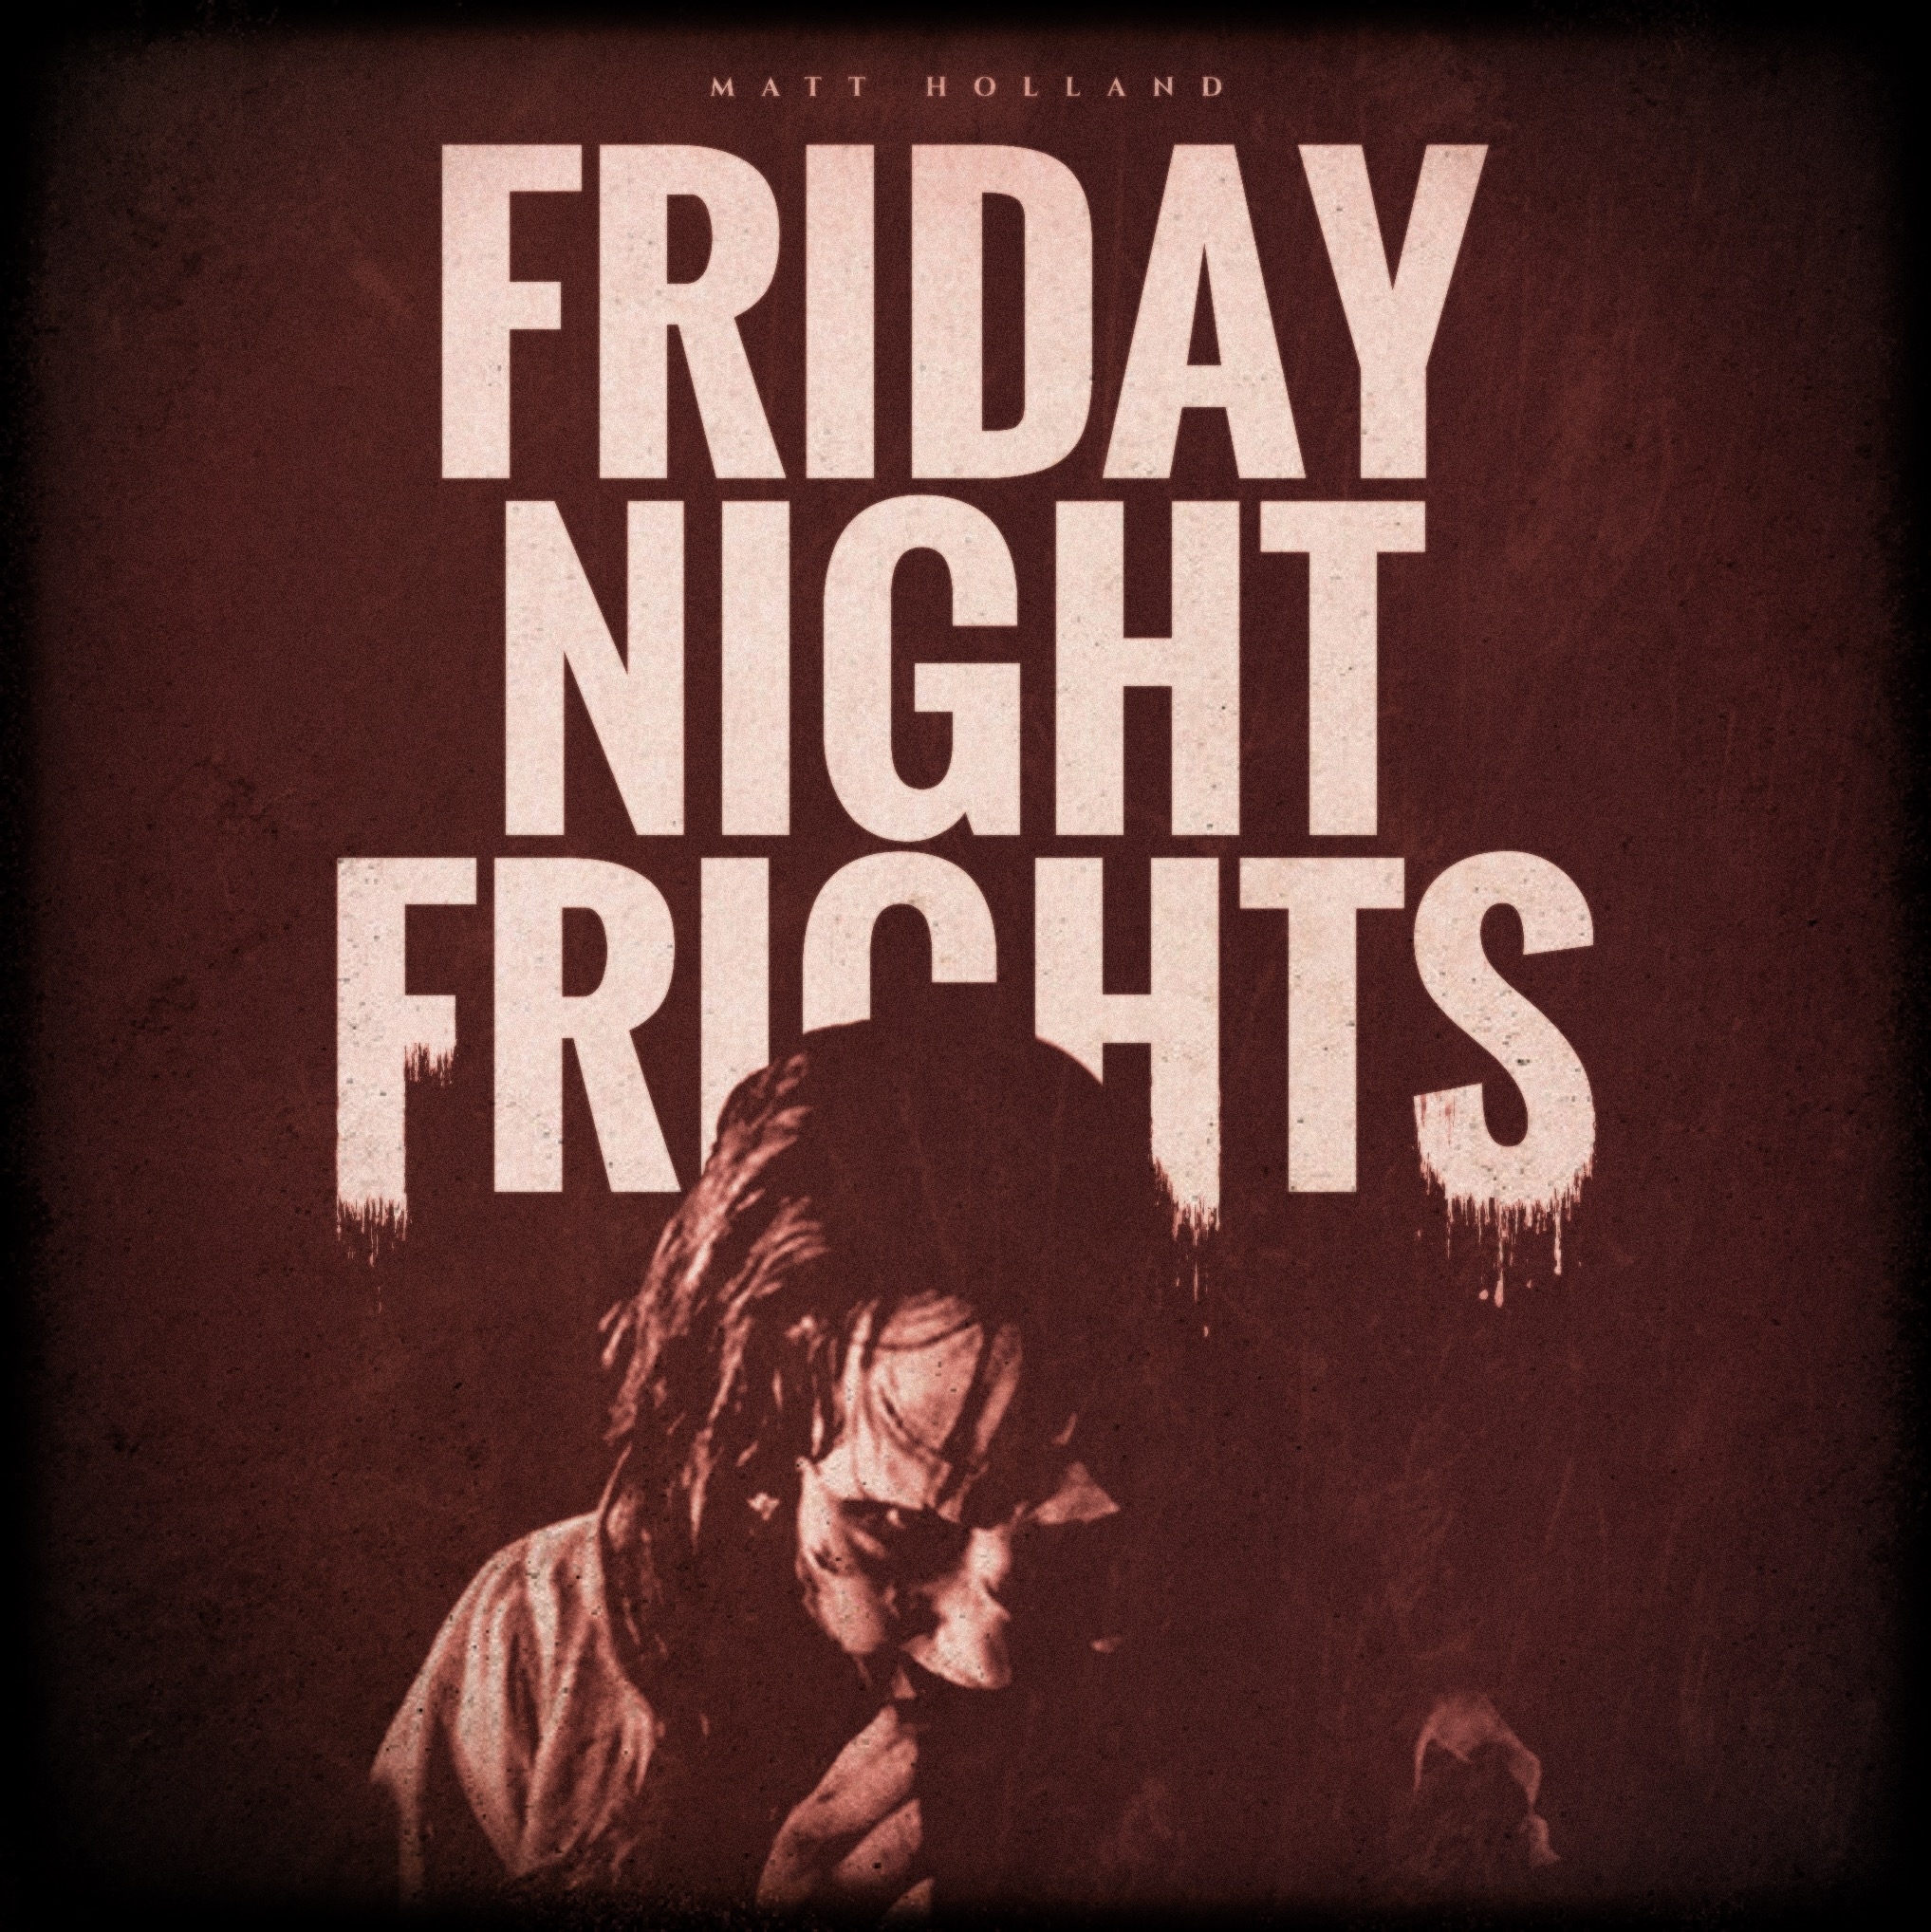 Friday Night Frights!